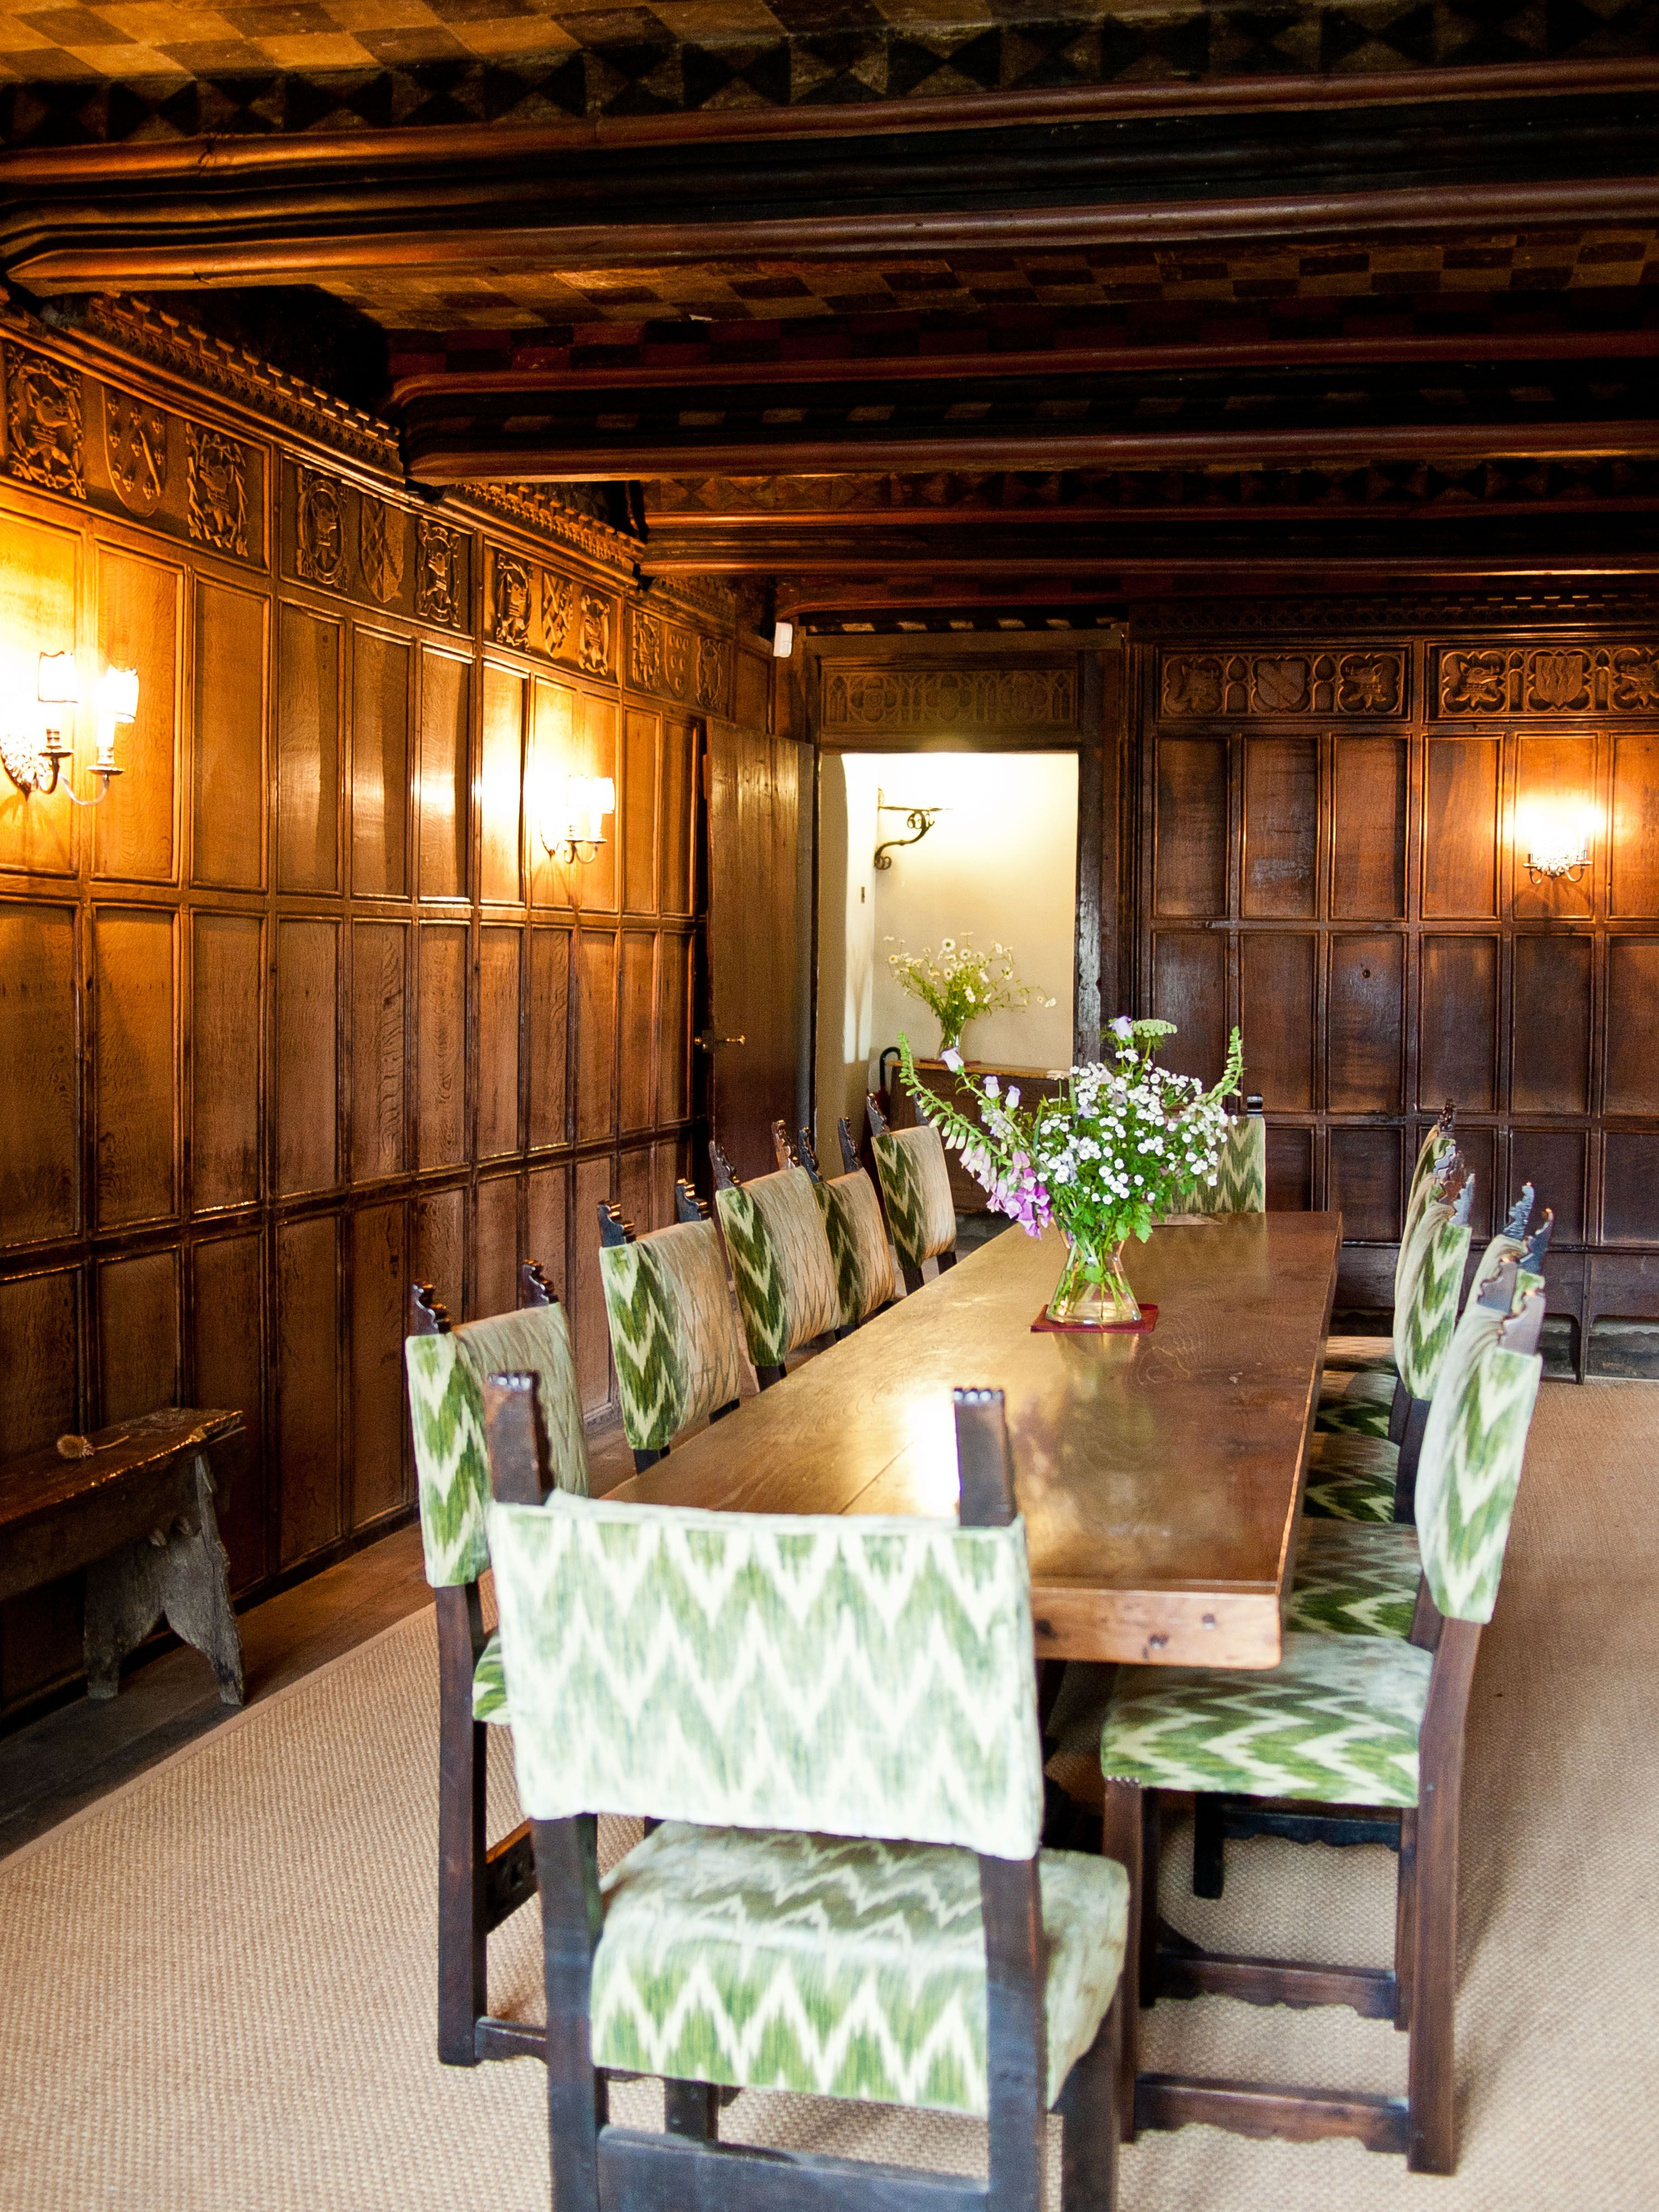 Haddon Hall Dining Room With Antique Flame Stitch Upholstery On The Chairs